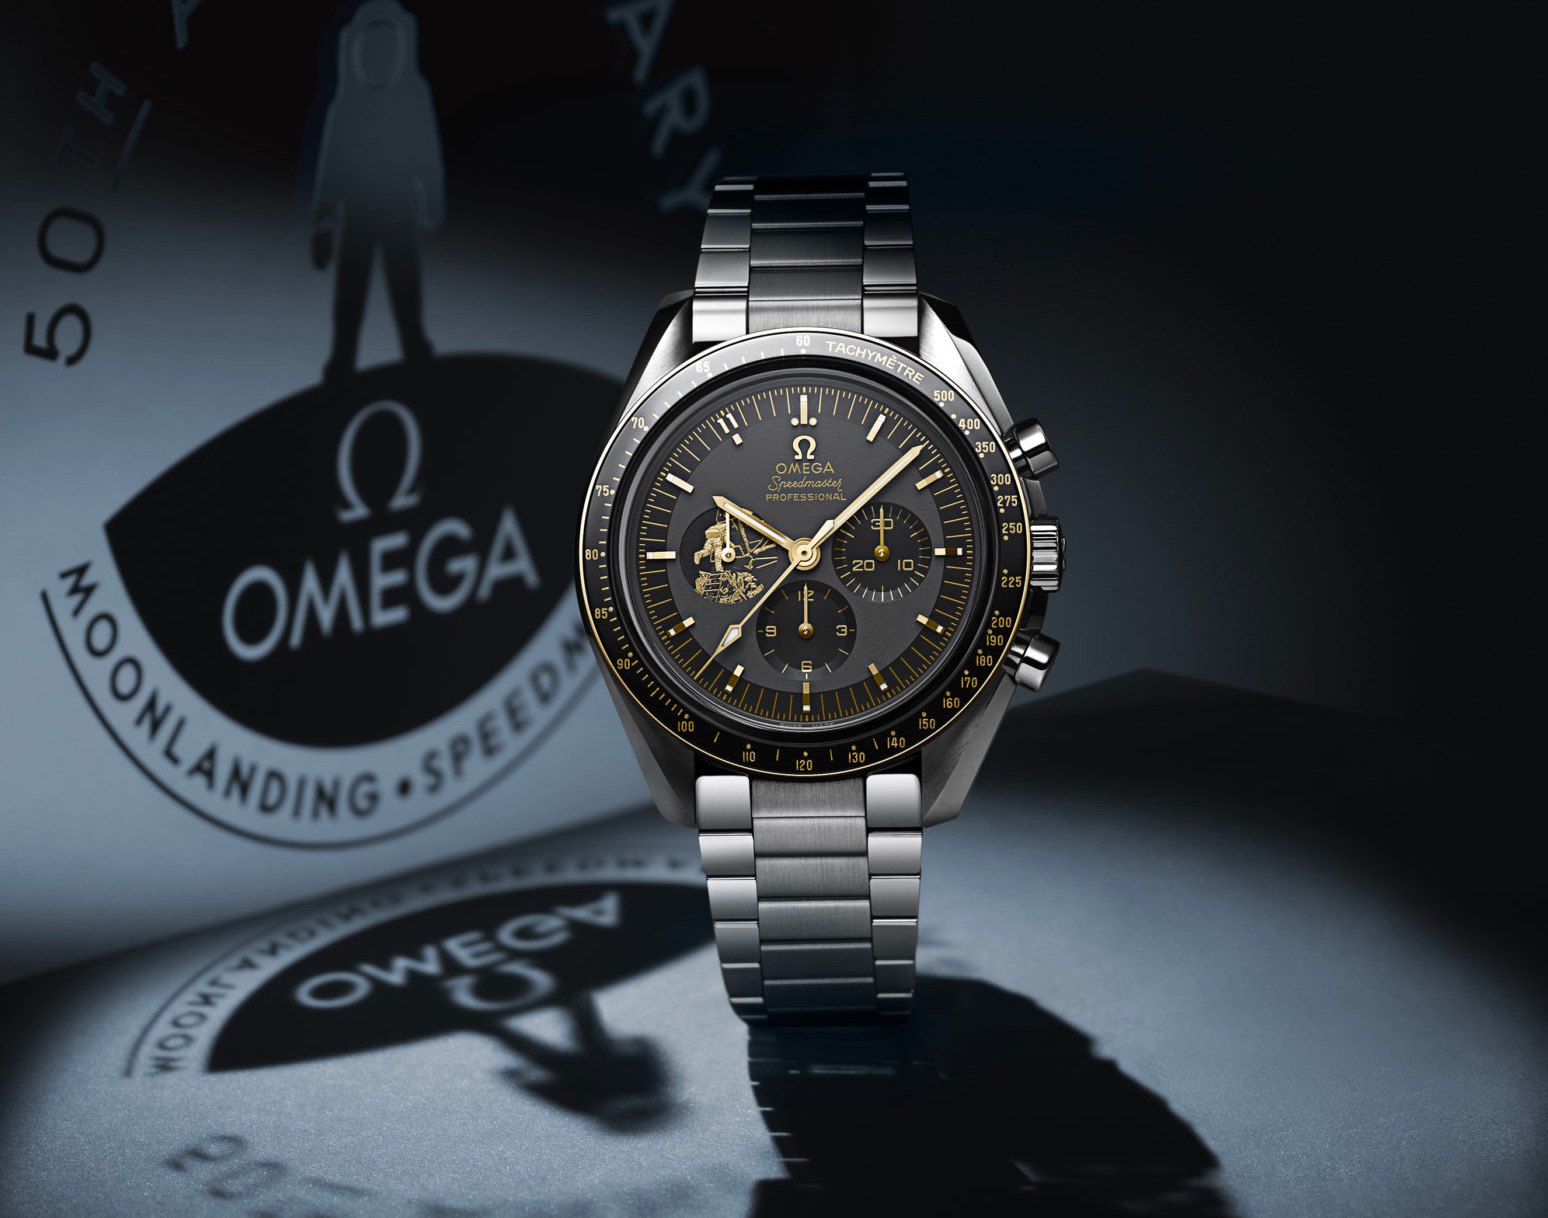 Omega Celebrates Apollo 11 with Limited Speedmaster Moonwatch at werd.com